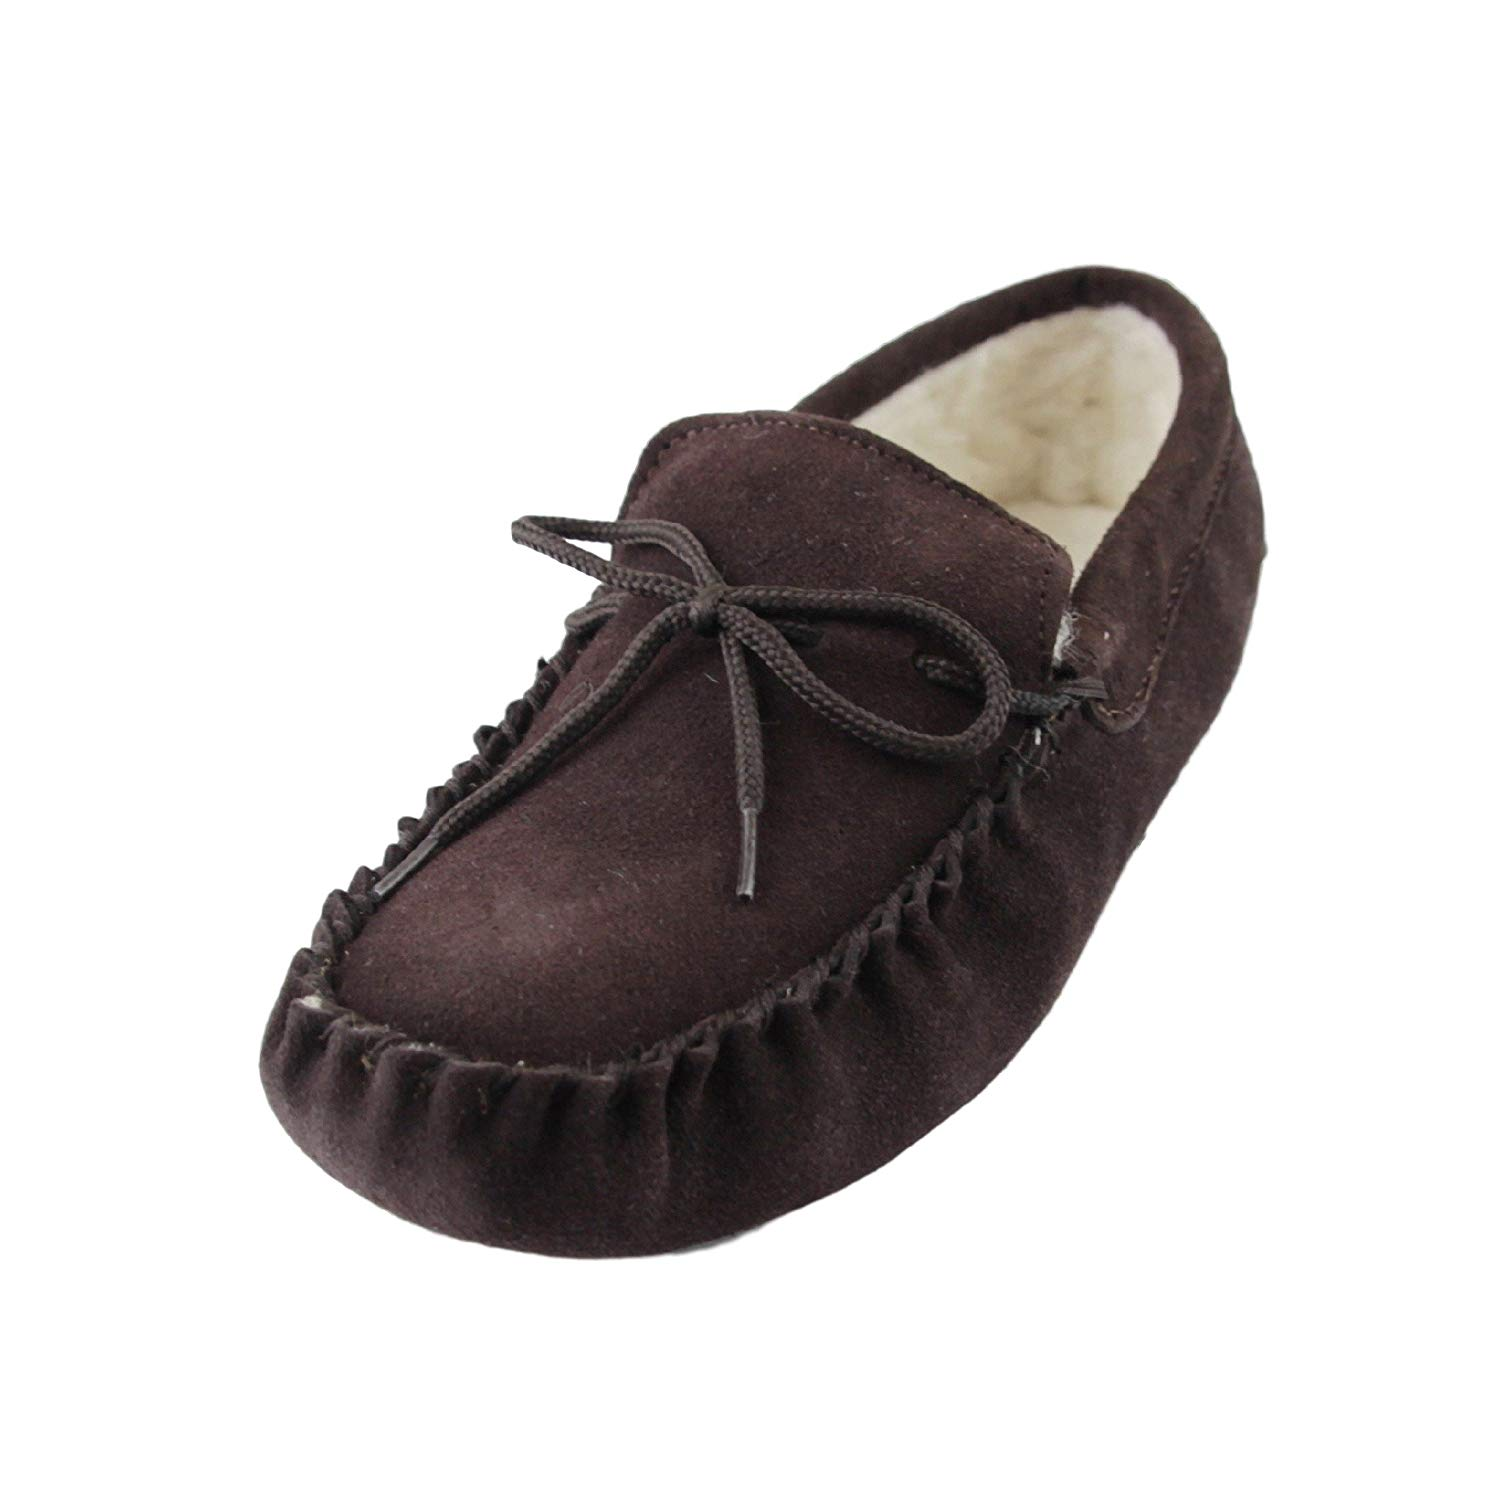 20db3bb77dbe Get Quotations · Deluxe Ladies Sheepskin Wool Moccasin Slippers with Soft  Sole - Suede Upper